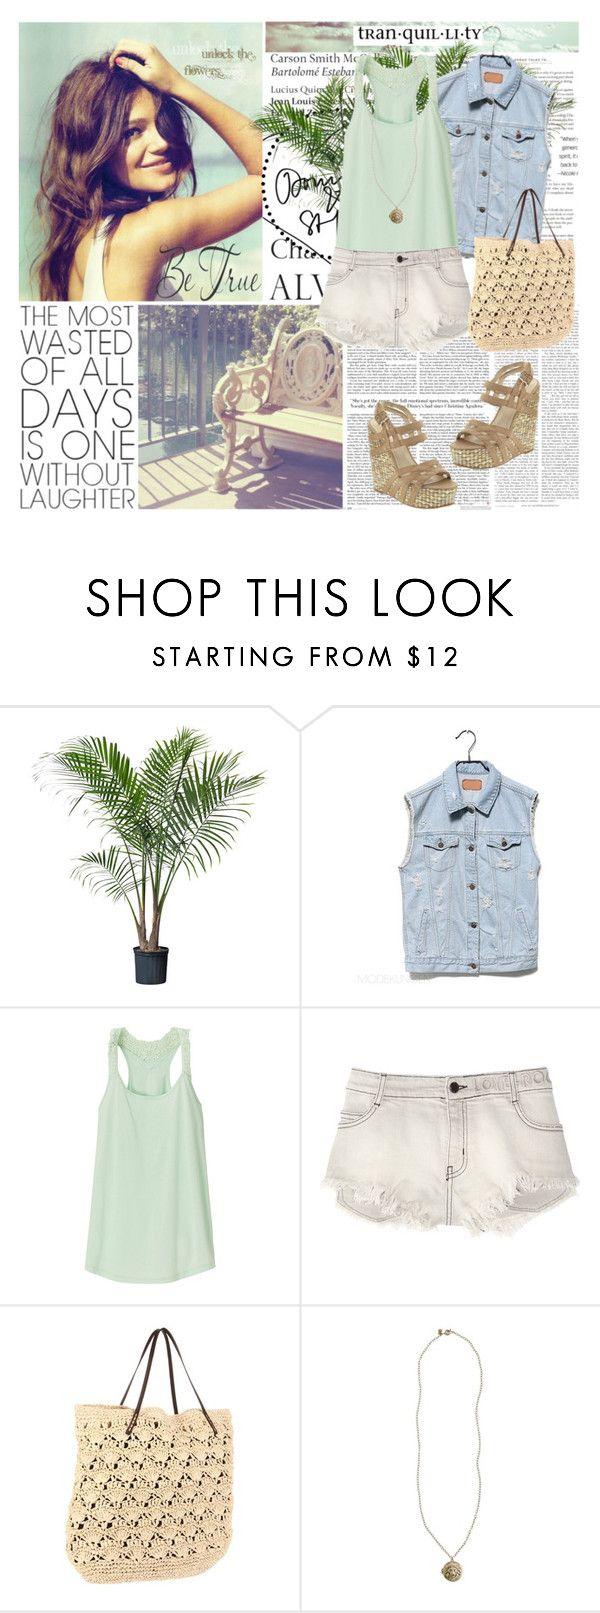 """""""Sit Back and Relax..."""" by i-like-clothes121 ❤ liked on Polyvore featuring WALL, Tiffany & Co., Uniqlo, Zadig & Voltaire, Nine West, Magid, J.Crew, denim shorts, straw tote bag and denim vest"""